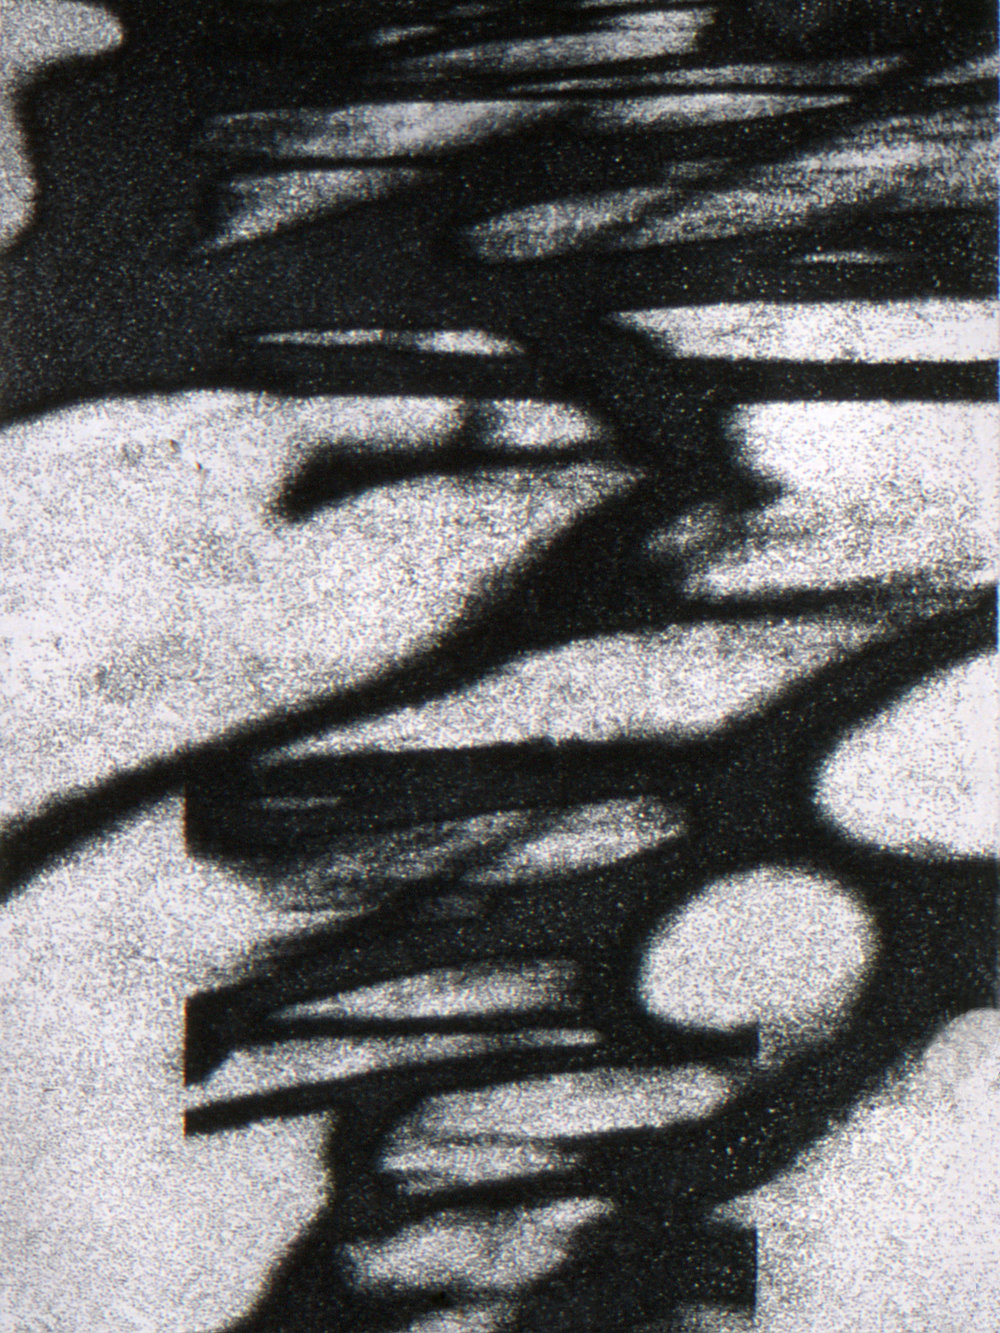 Landscape 2, 2002, Etching, 12 x 9 in. (on 30 x 23.5 in. BFK Rives)